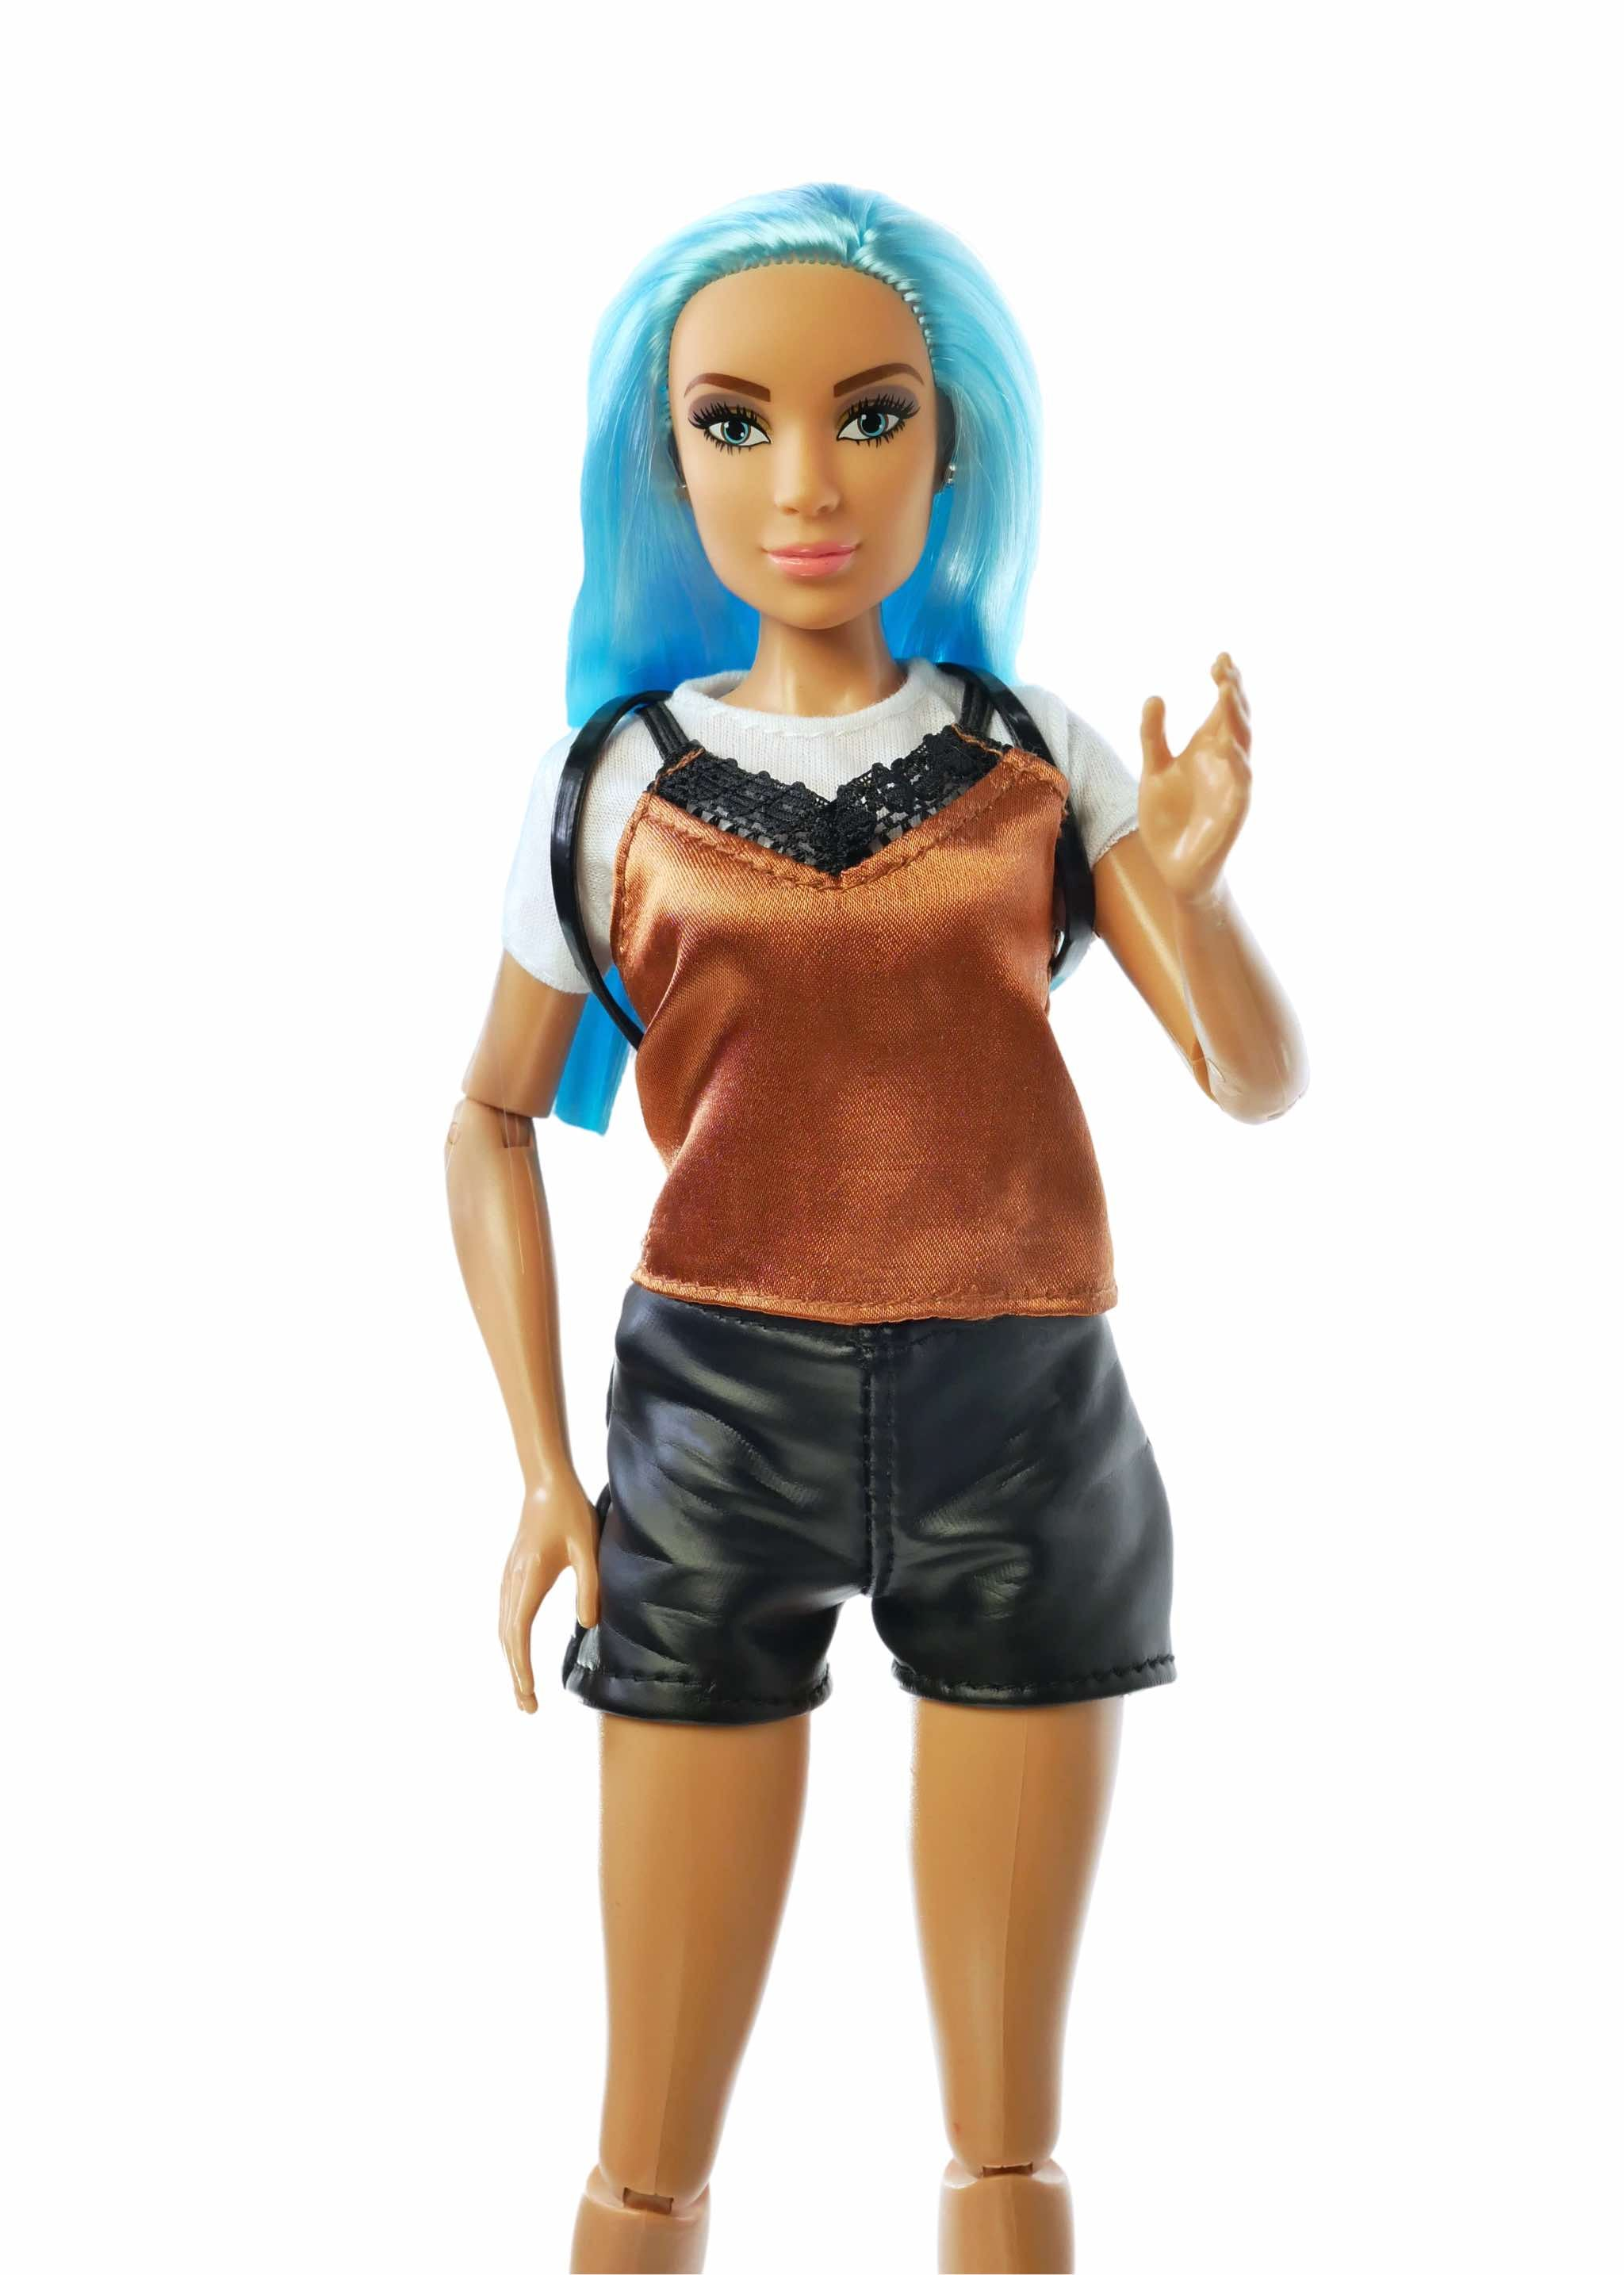 Blue hair doll wearing lace top and leather shorts.